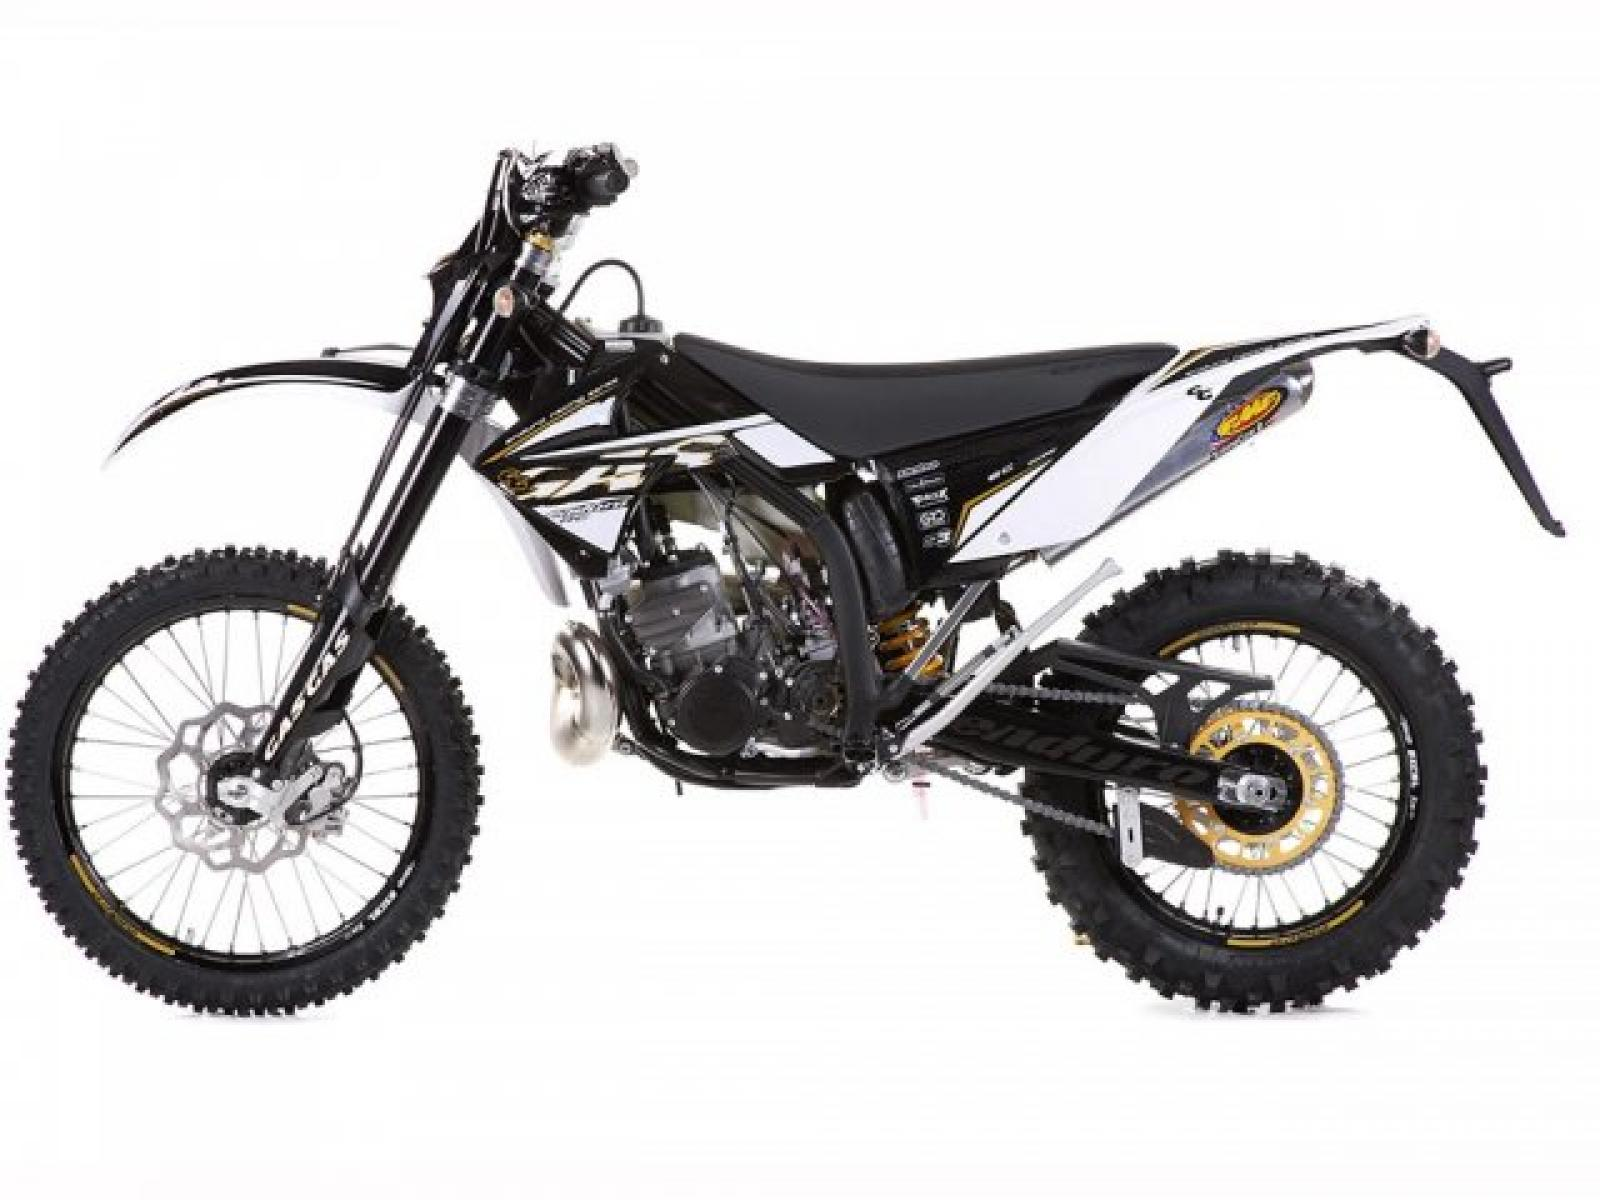 2010 GAS GAS EC 125 2T Racing specifications and pictures